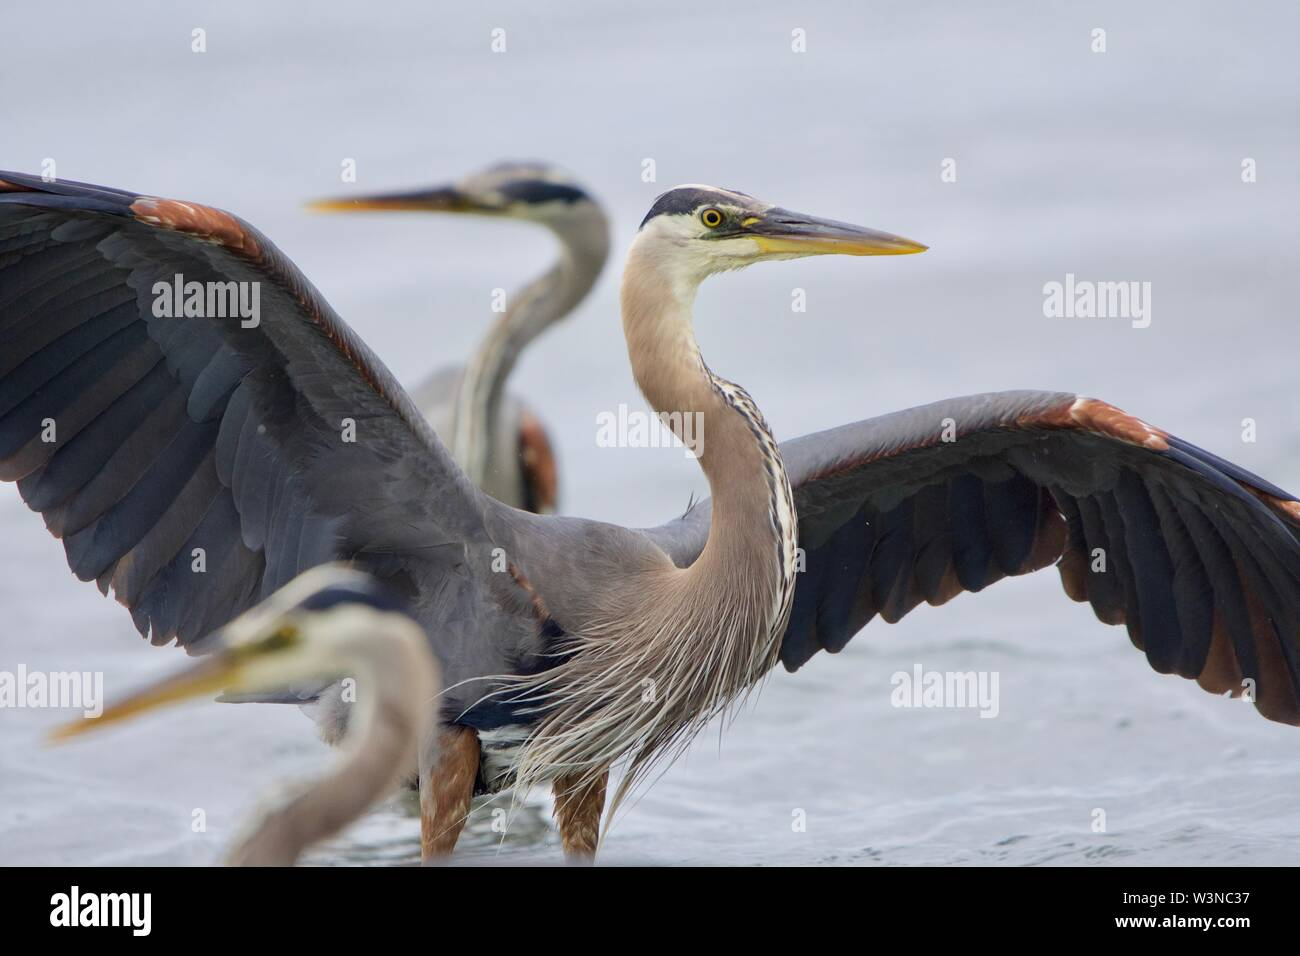 Great blue herons look in opposite directions while one spreads its wings,  Witty's Lagoon, Vancouver Island, British Columbia. - Stock Image